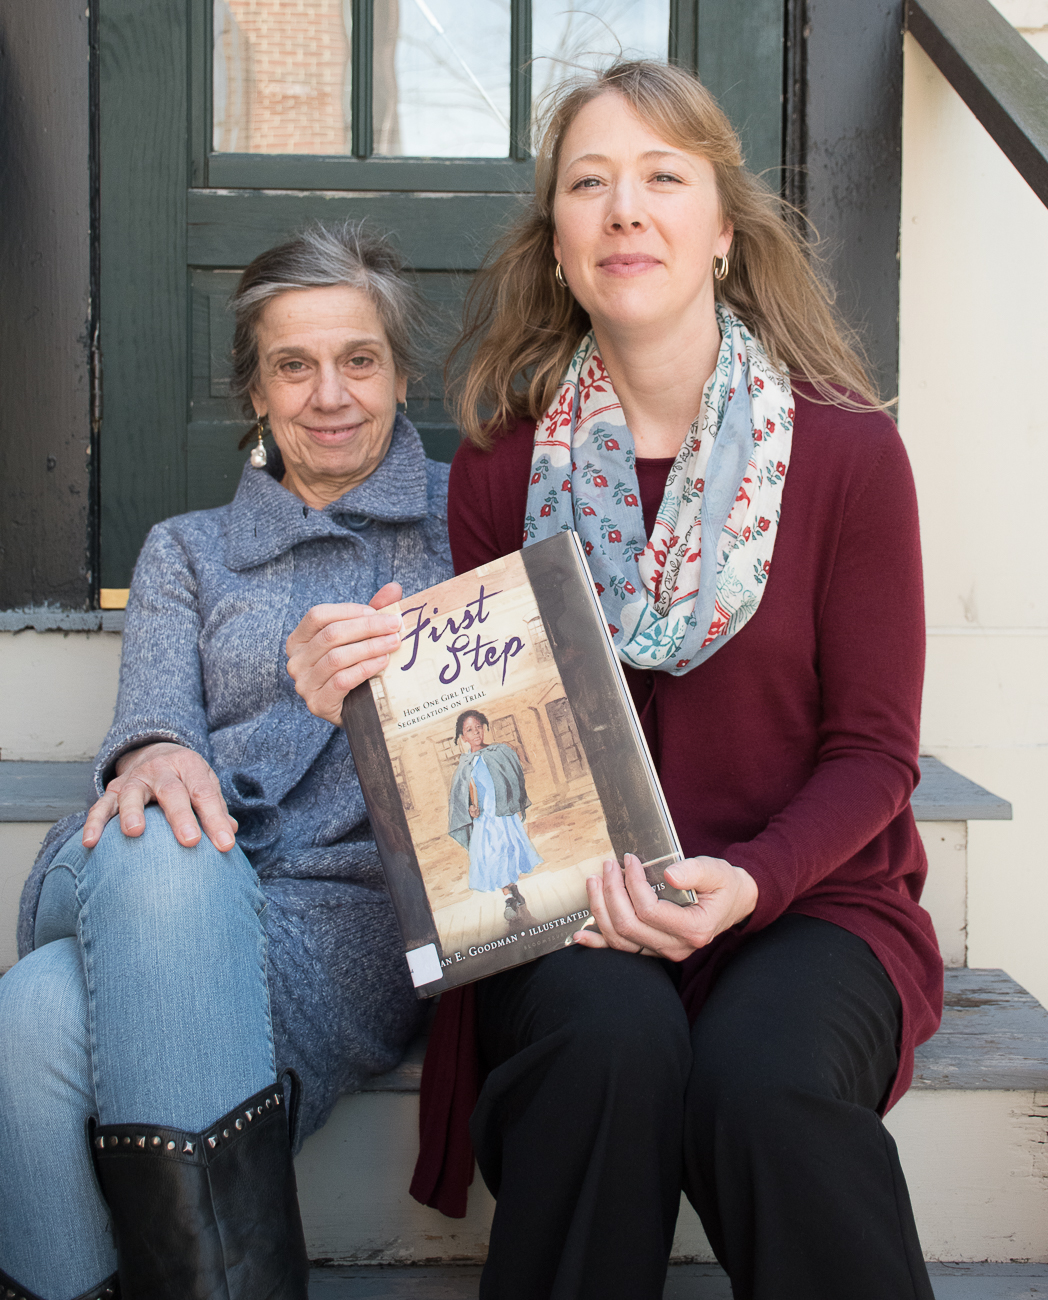 Susan Goodman and Erika Dawes sit on steps outside holding a copy of one of Susan's books